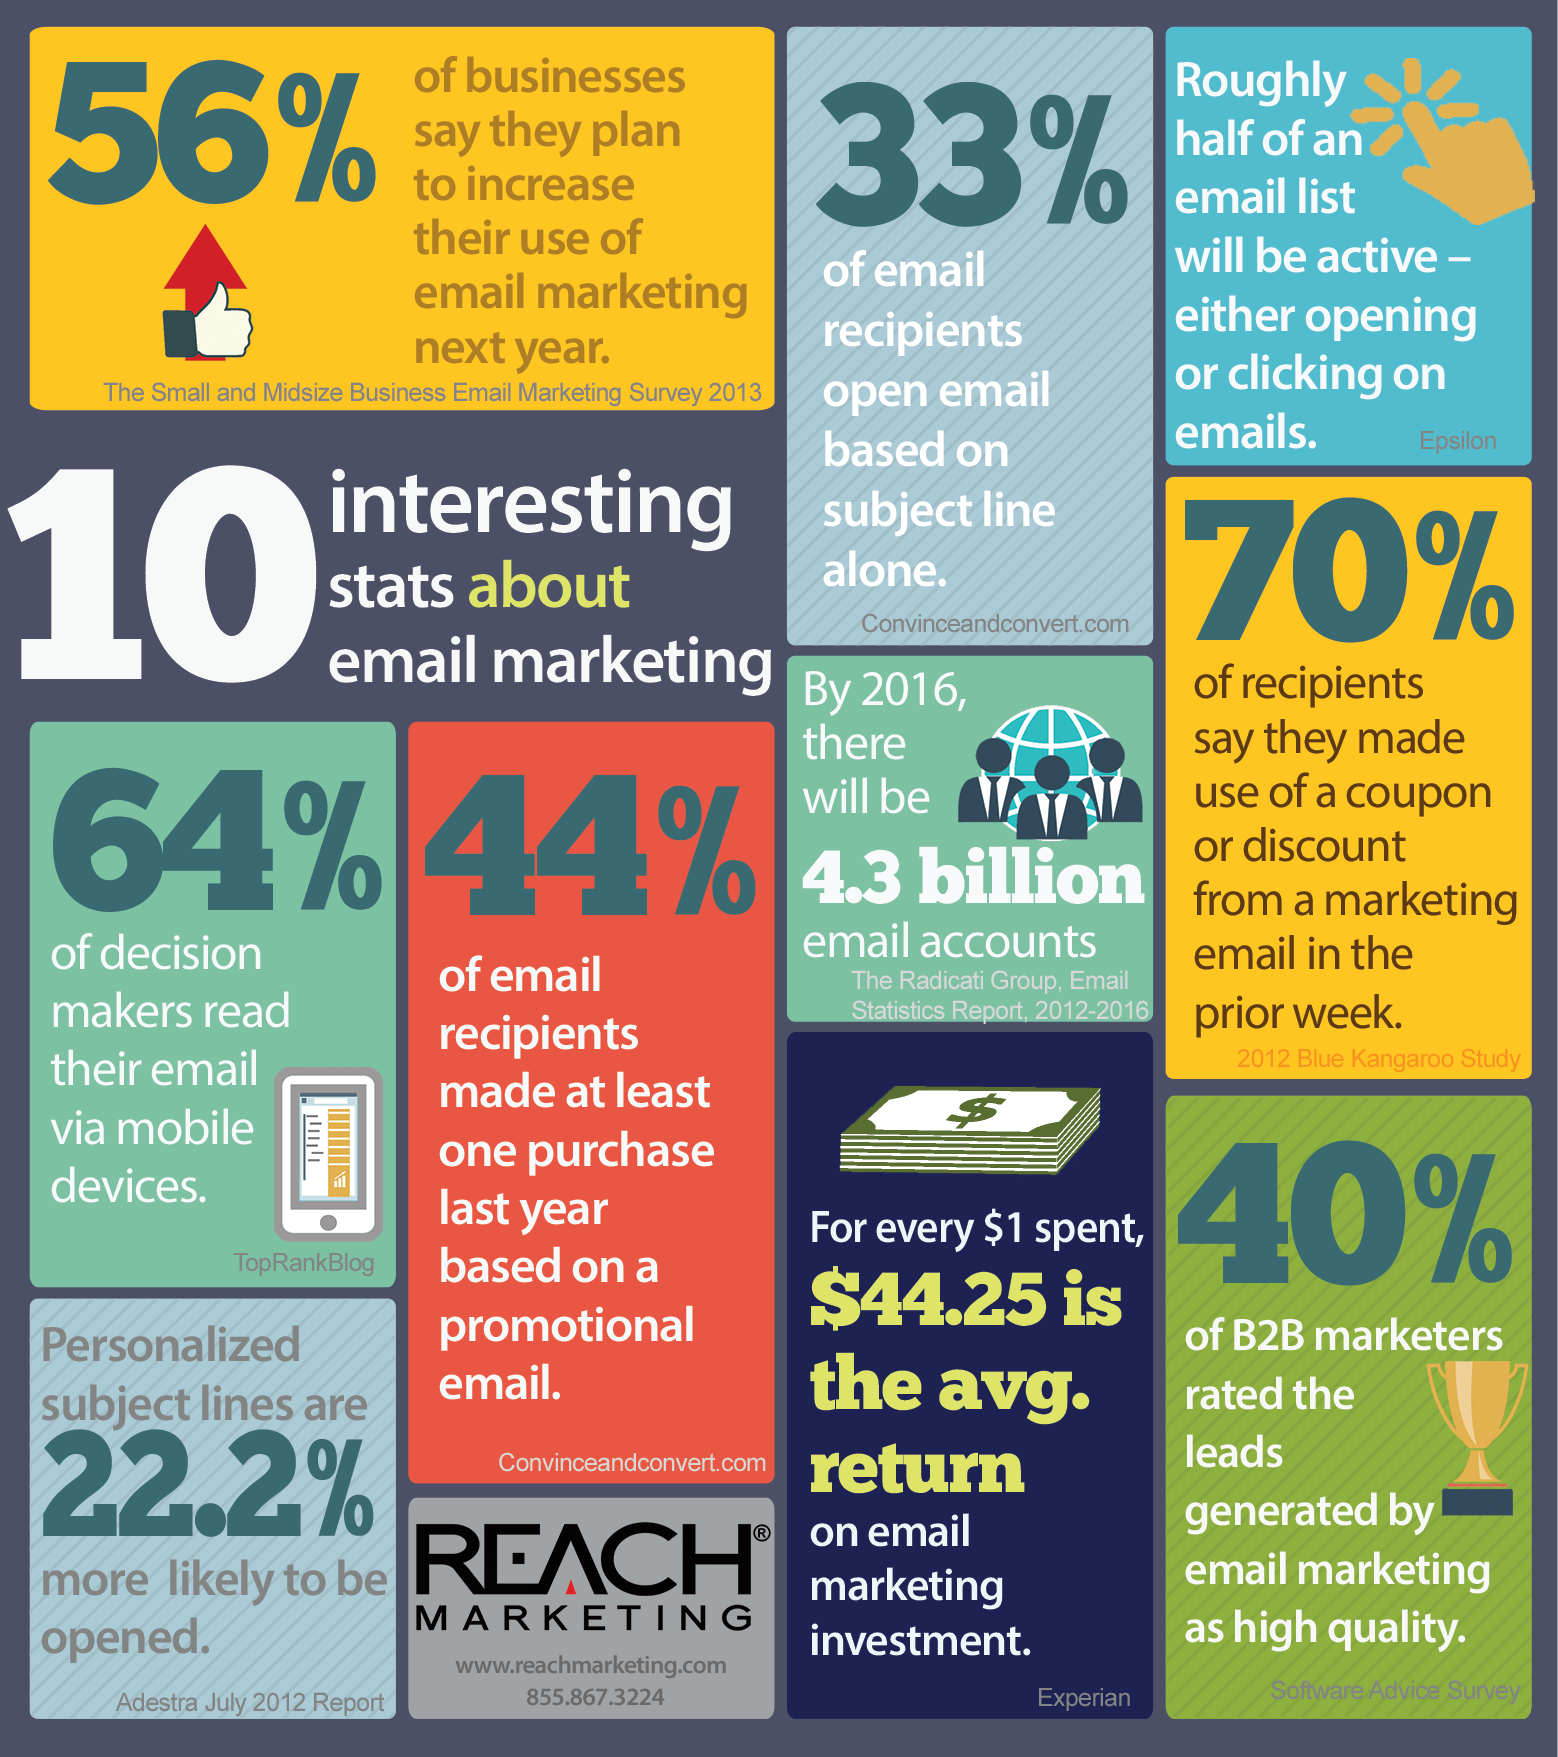 Some interesting facts about email marketing.